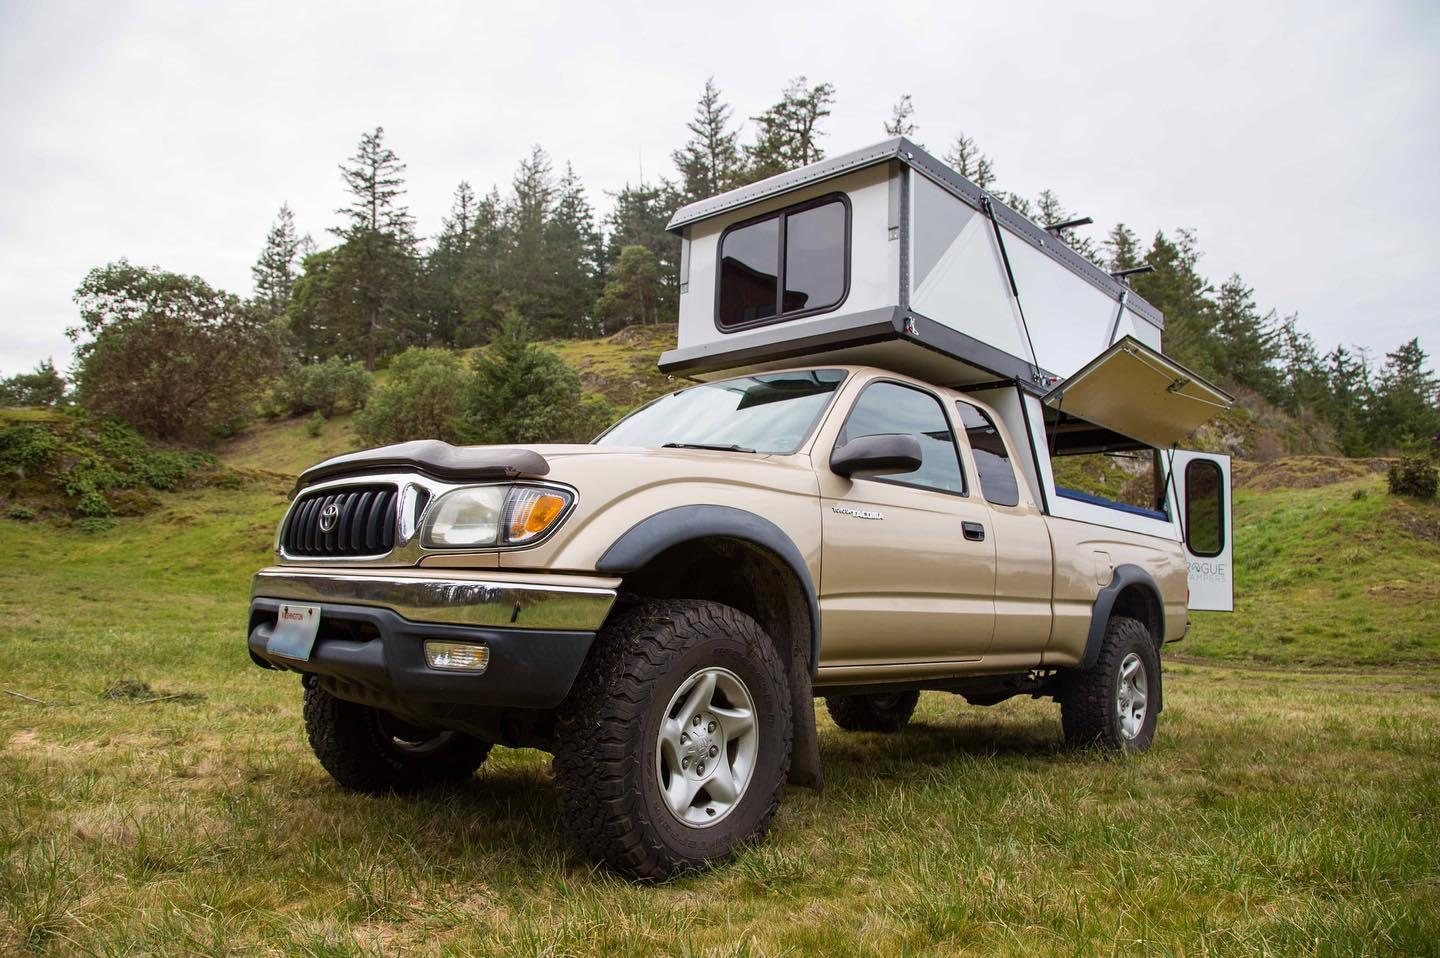 Hiatus offers its camper for both midsize and full-size pickup trucks